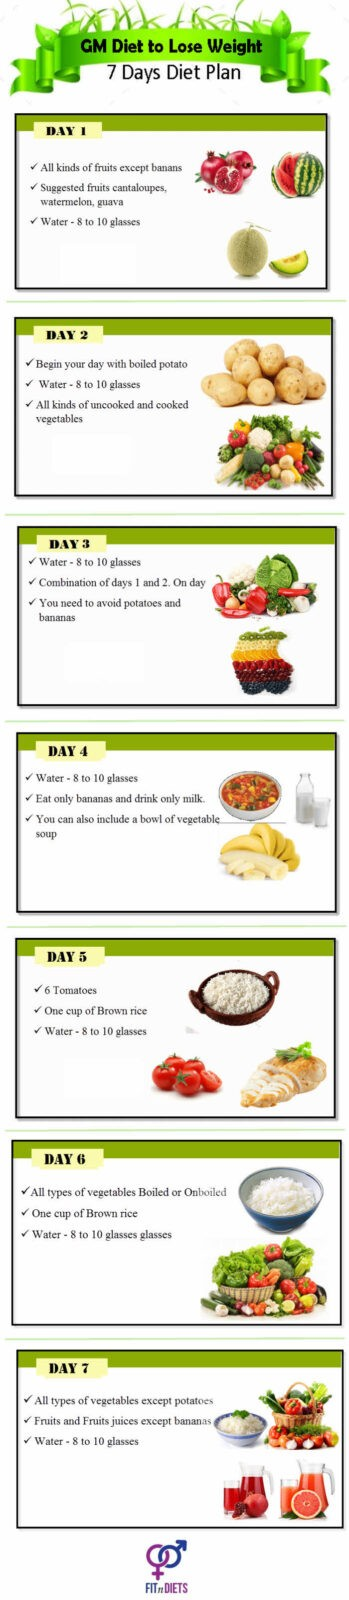 Gm Diet Chart And Menu How To Lose Weight In 7 Days